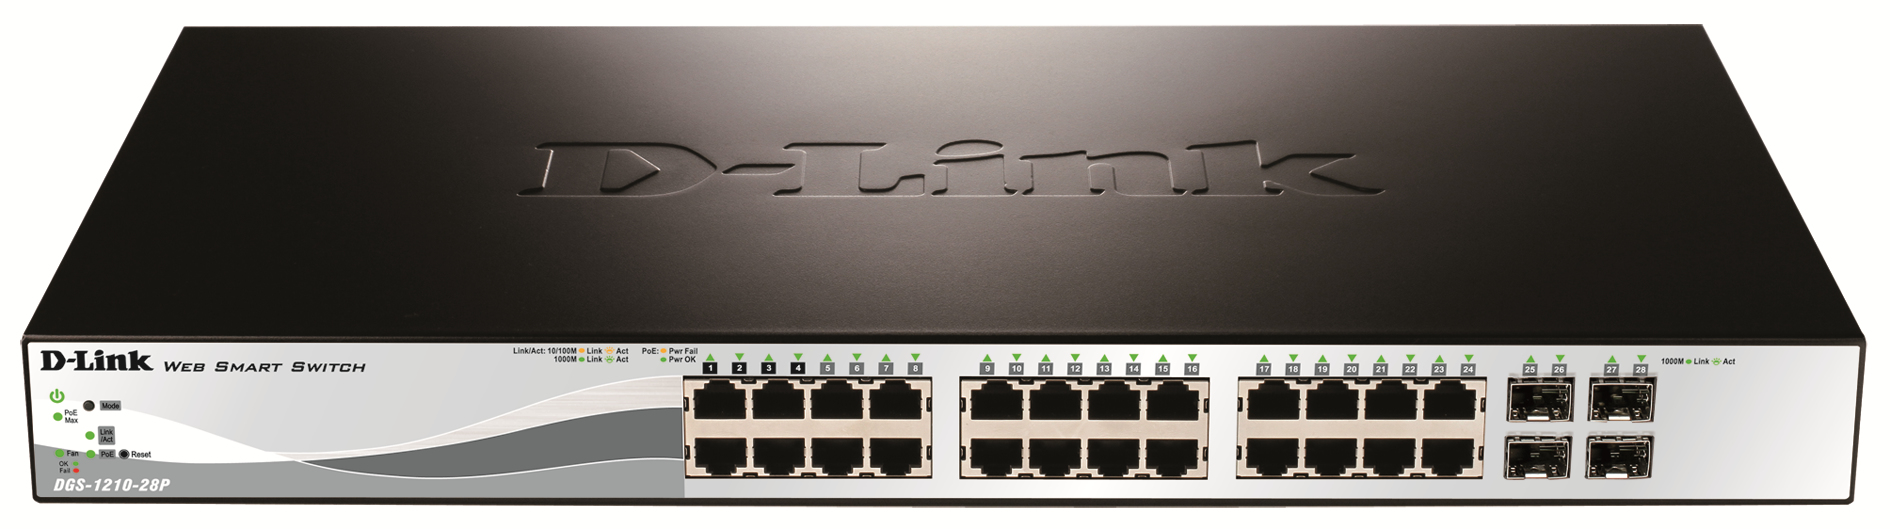 D-LINK DGS-1210-28P MANAGED NETWORK SWITCH L2 POWER OVER ETHERNET (POE) 1U